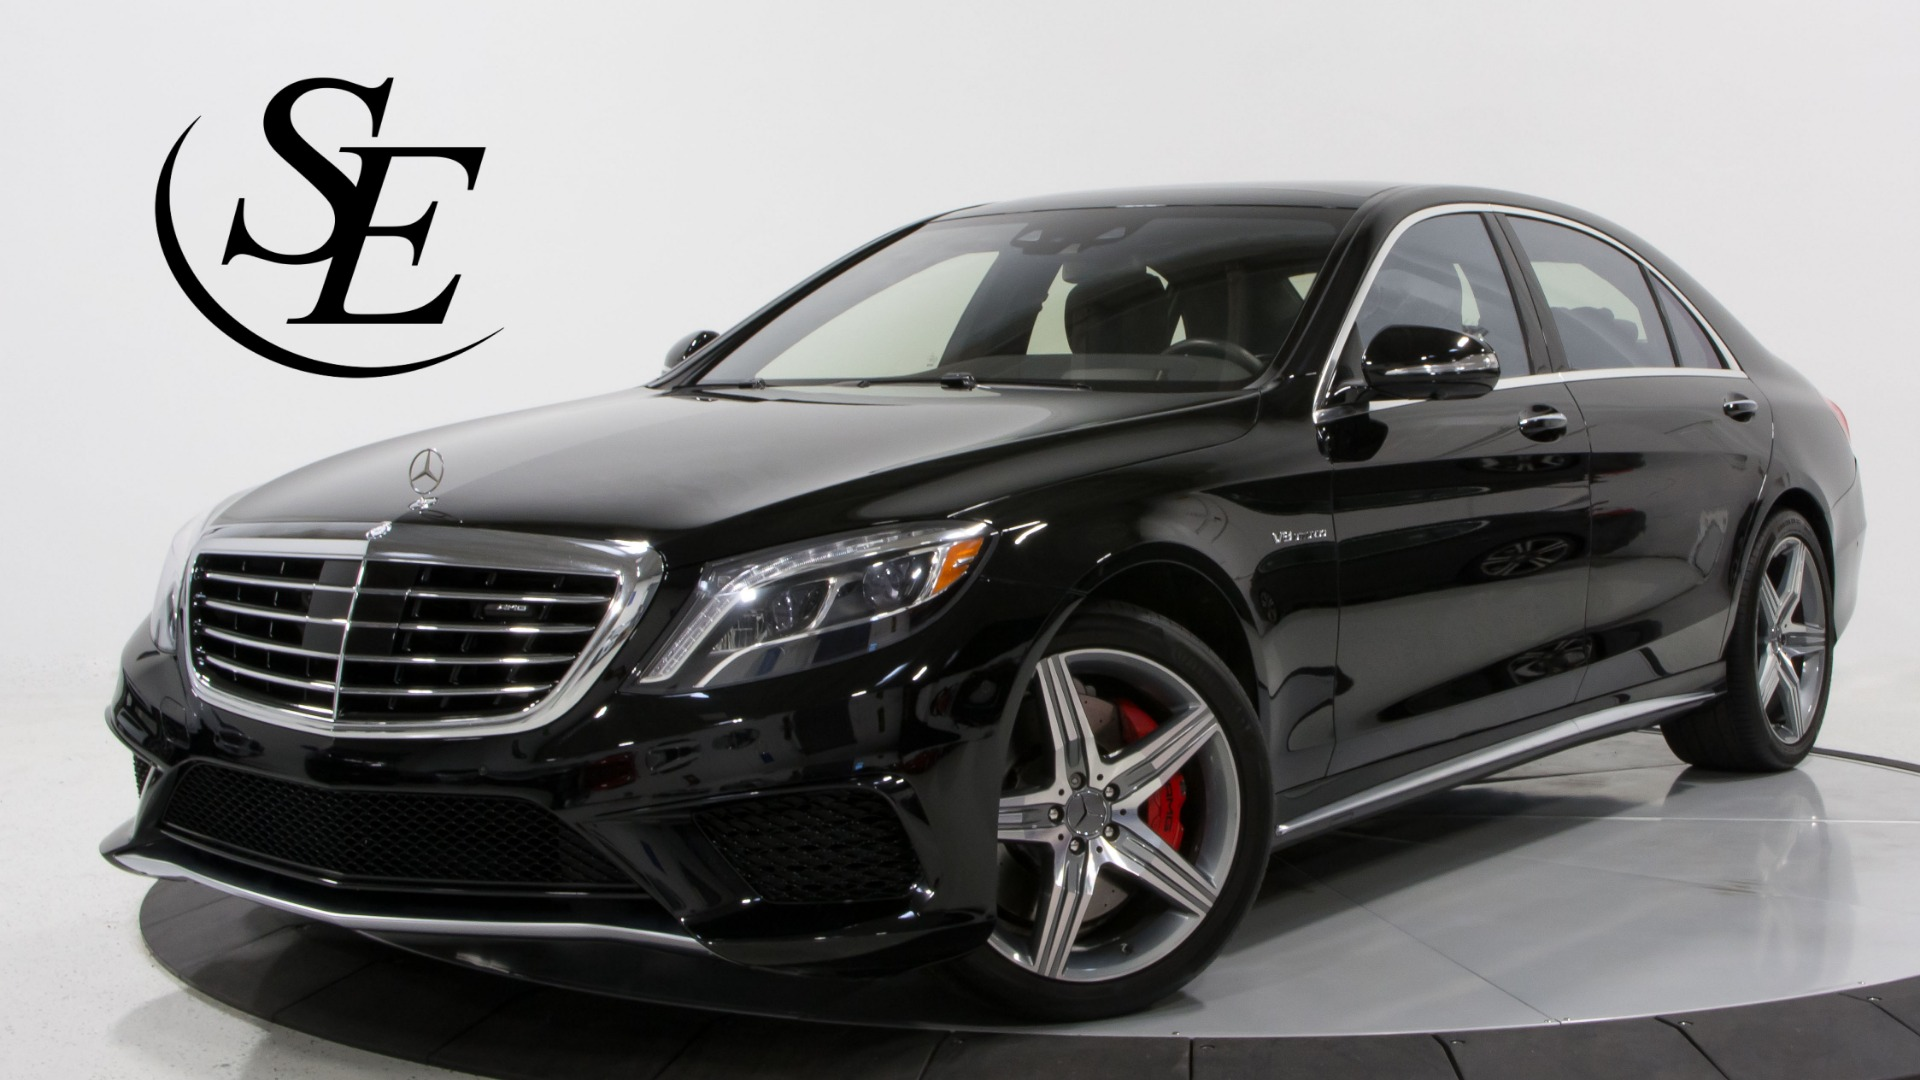 gls greenwich c sale main l near ct benz htm for used amg mercedes stock